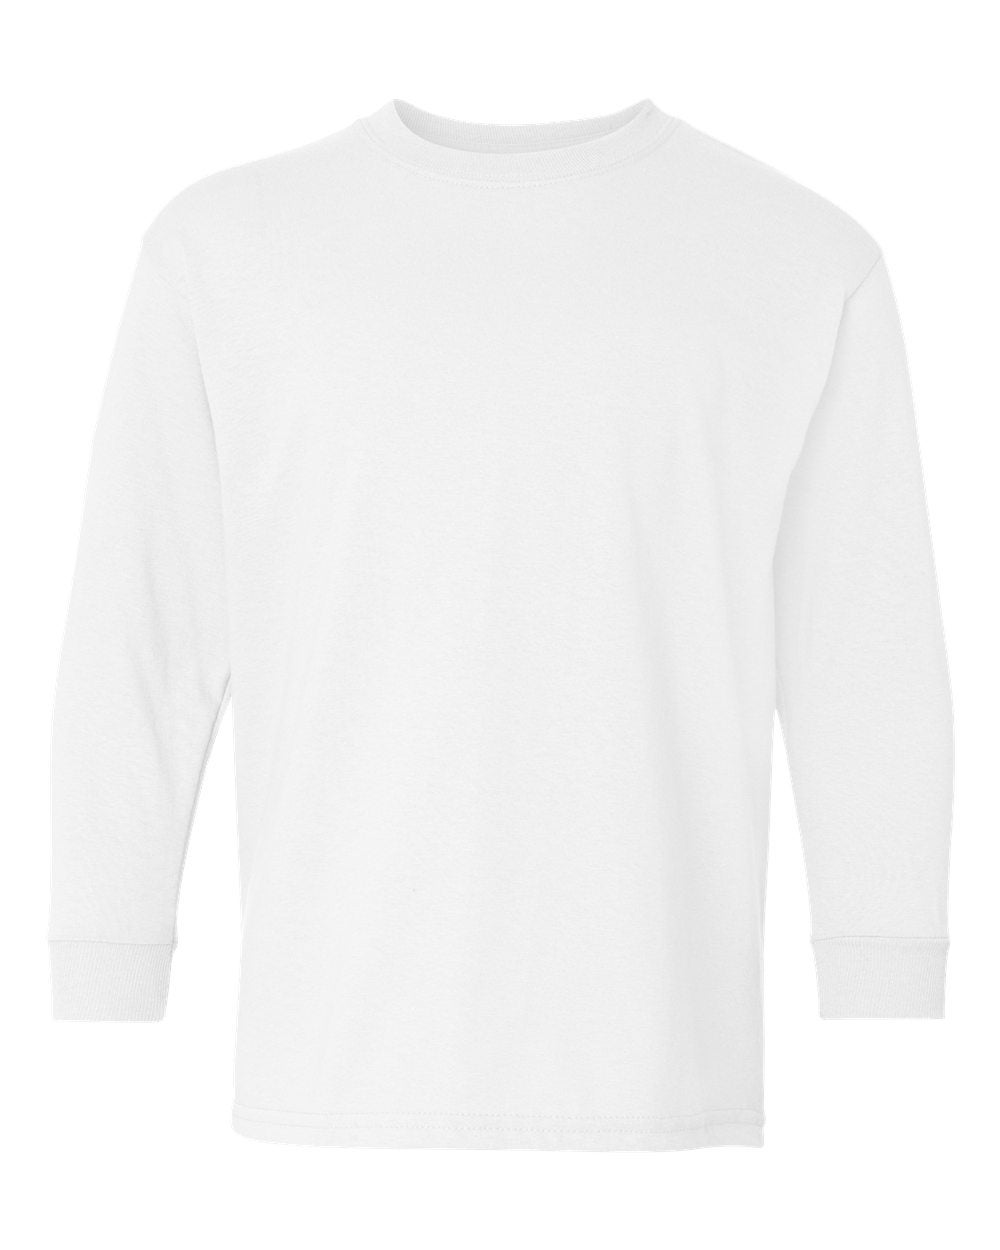 Image of Youth Wyandot Run Mascot Long Sleeve Tee